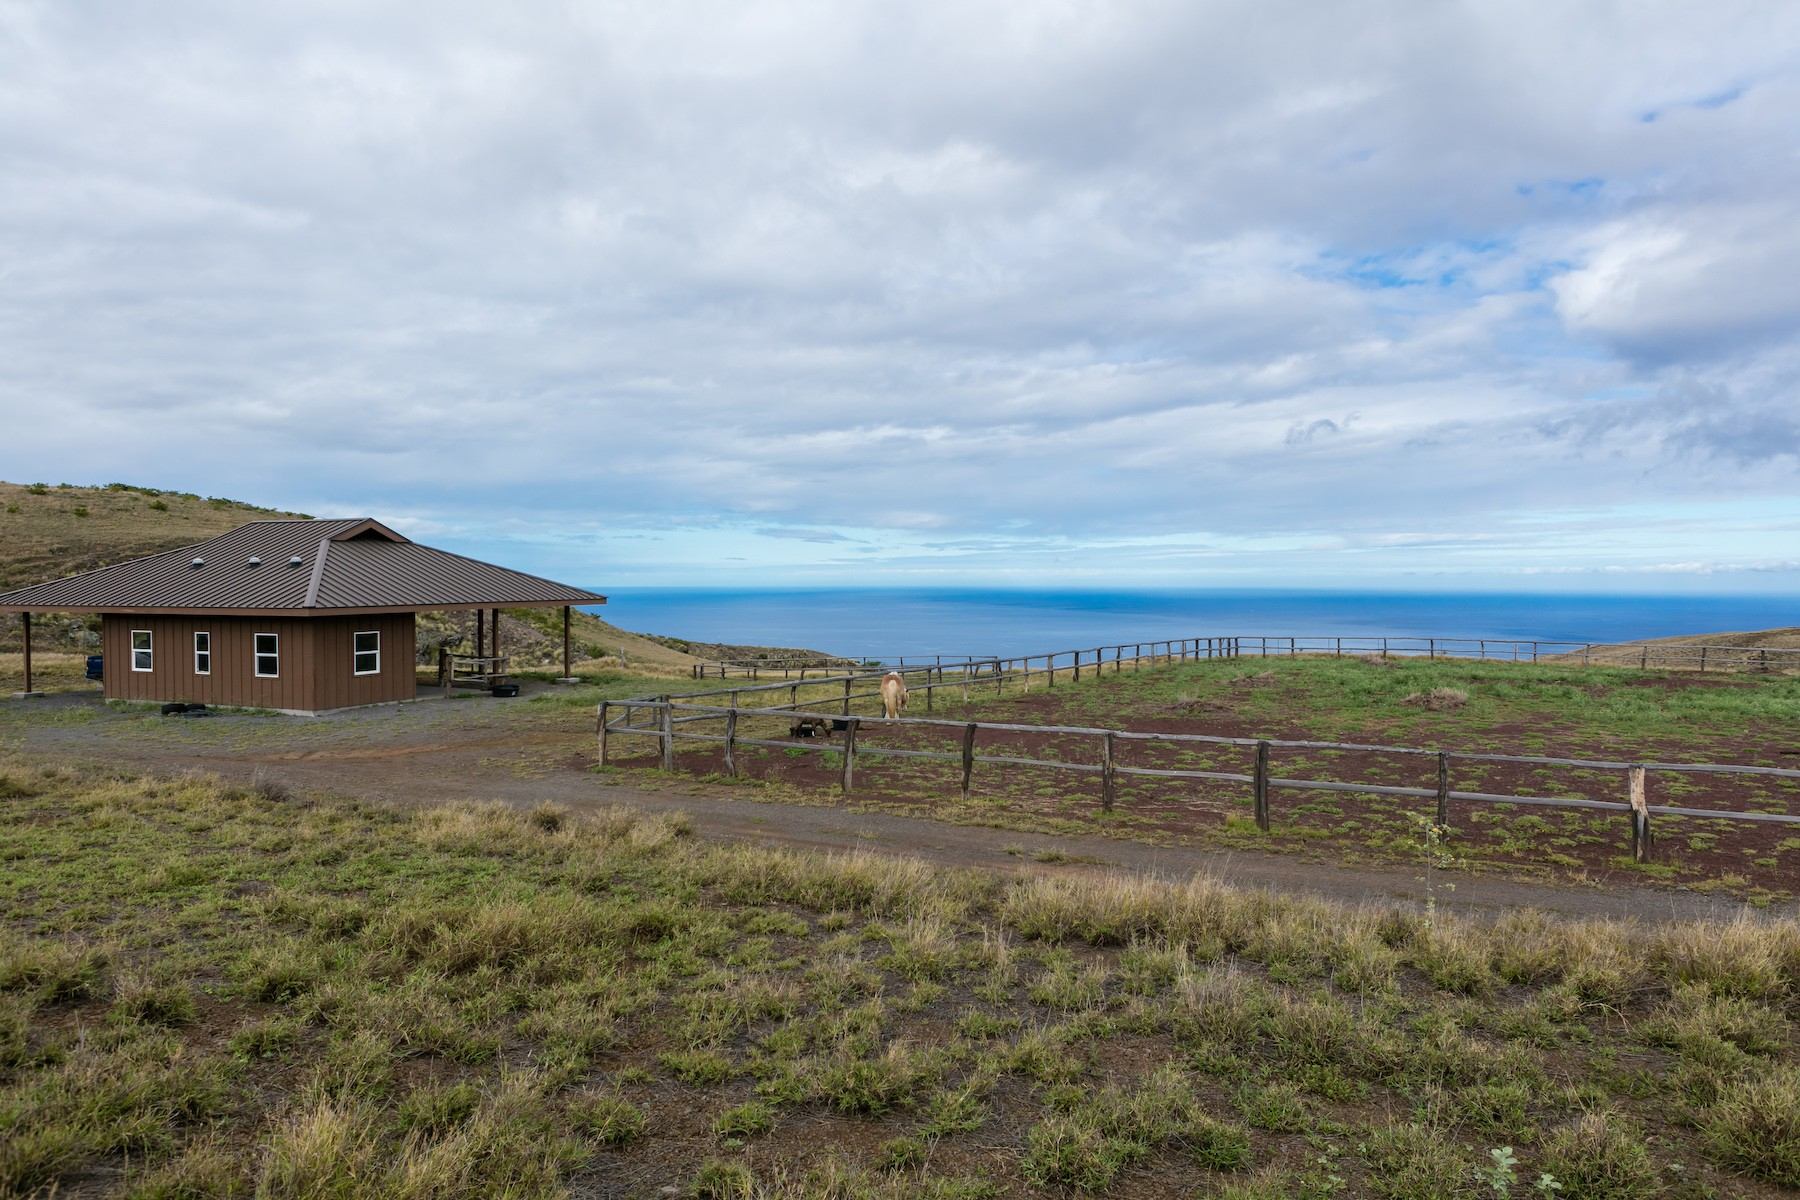 Terreno por un Venta en Kohala Ranch 59-978 Kamakani Lp Kapaau, Hawaii, 96755 Estados Unidos